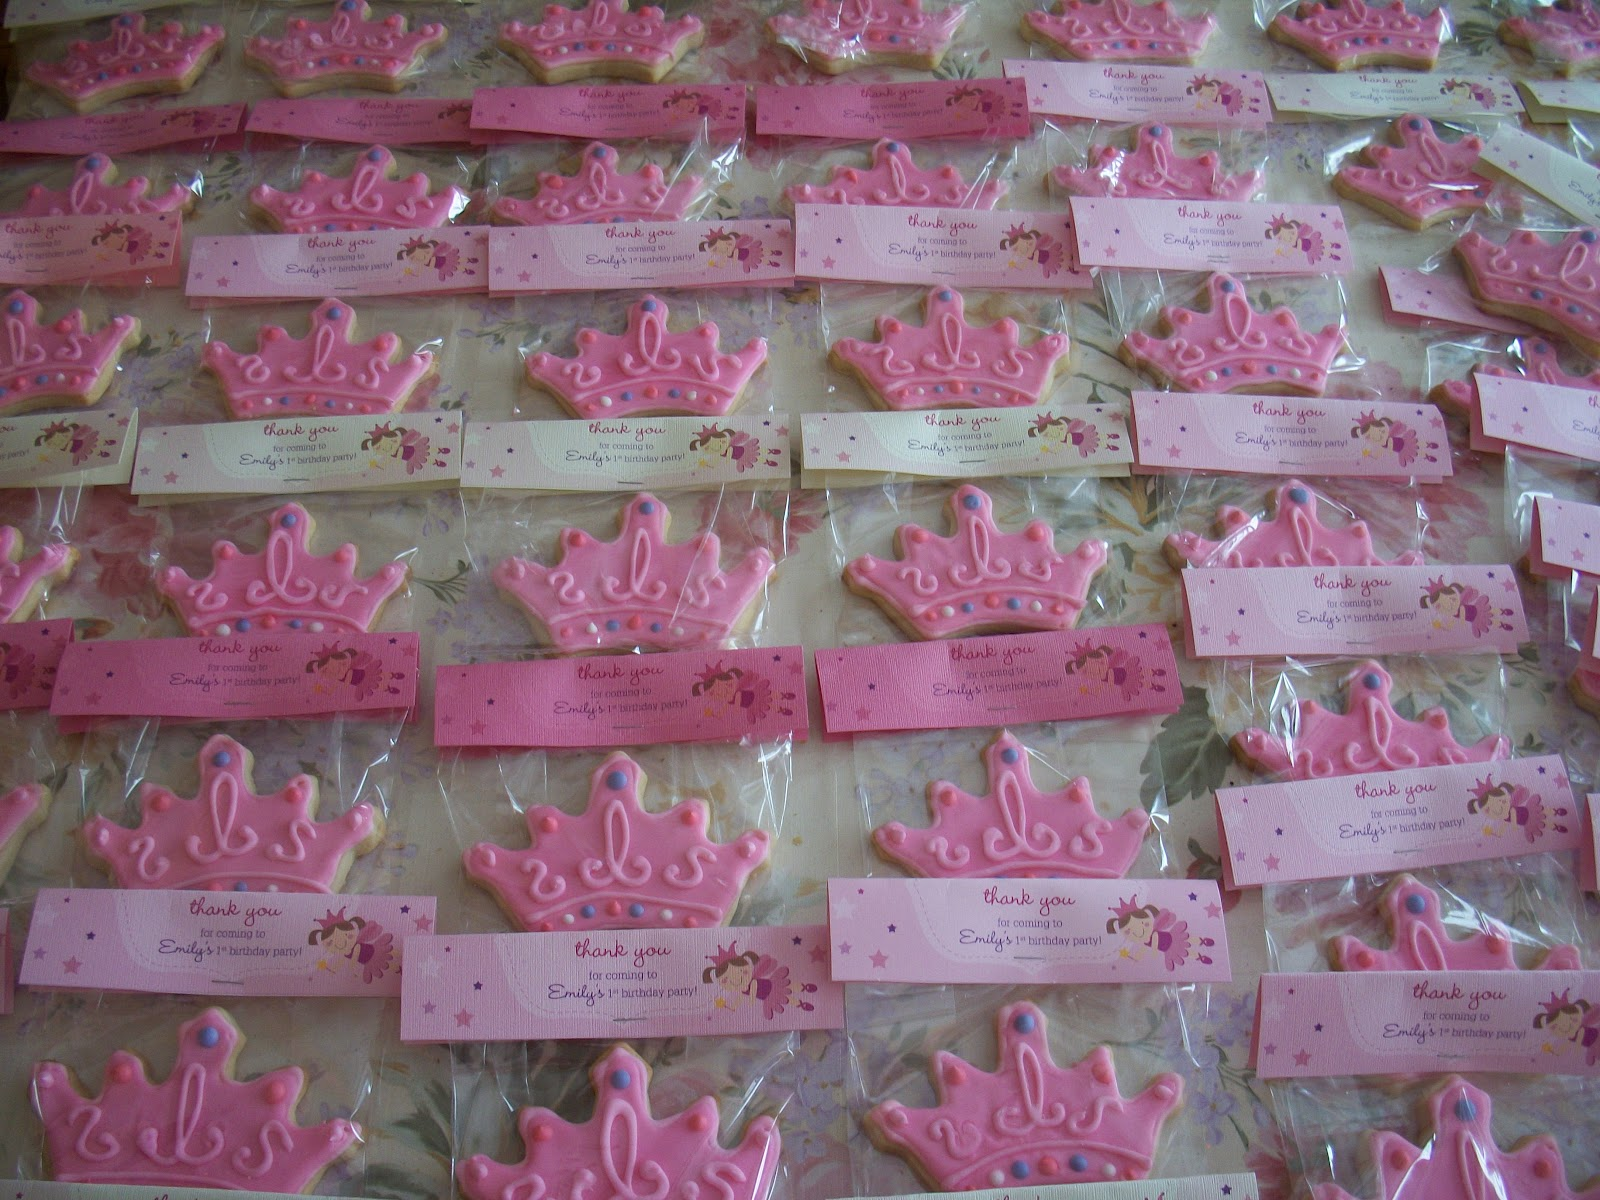 Just Wanted To Share Some Cute Cookies I Made For A Special Little Girls First BirthdayShe Was Having Princess PartyEvery Girl Deserves An